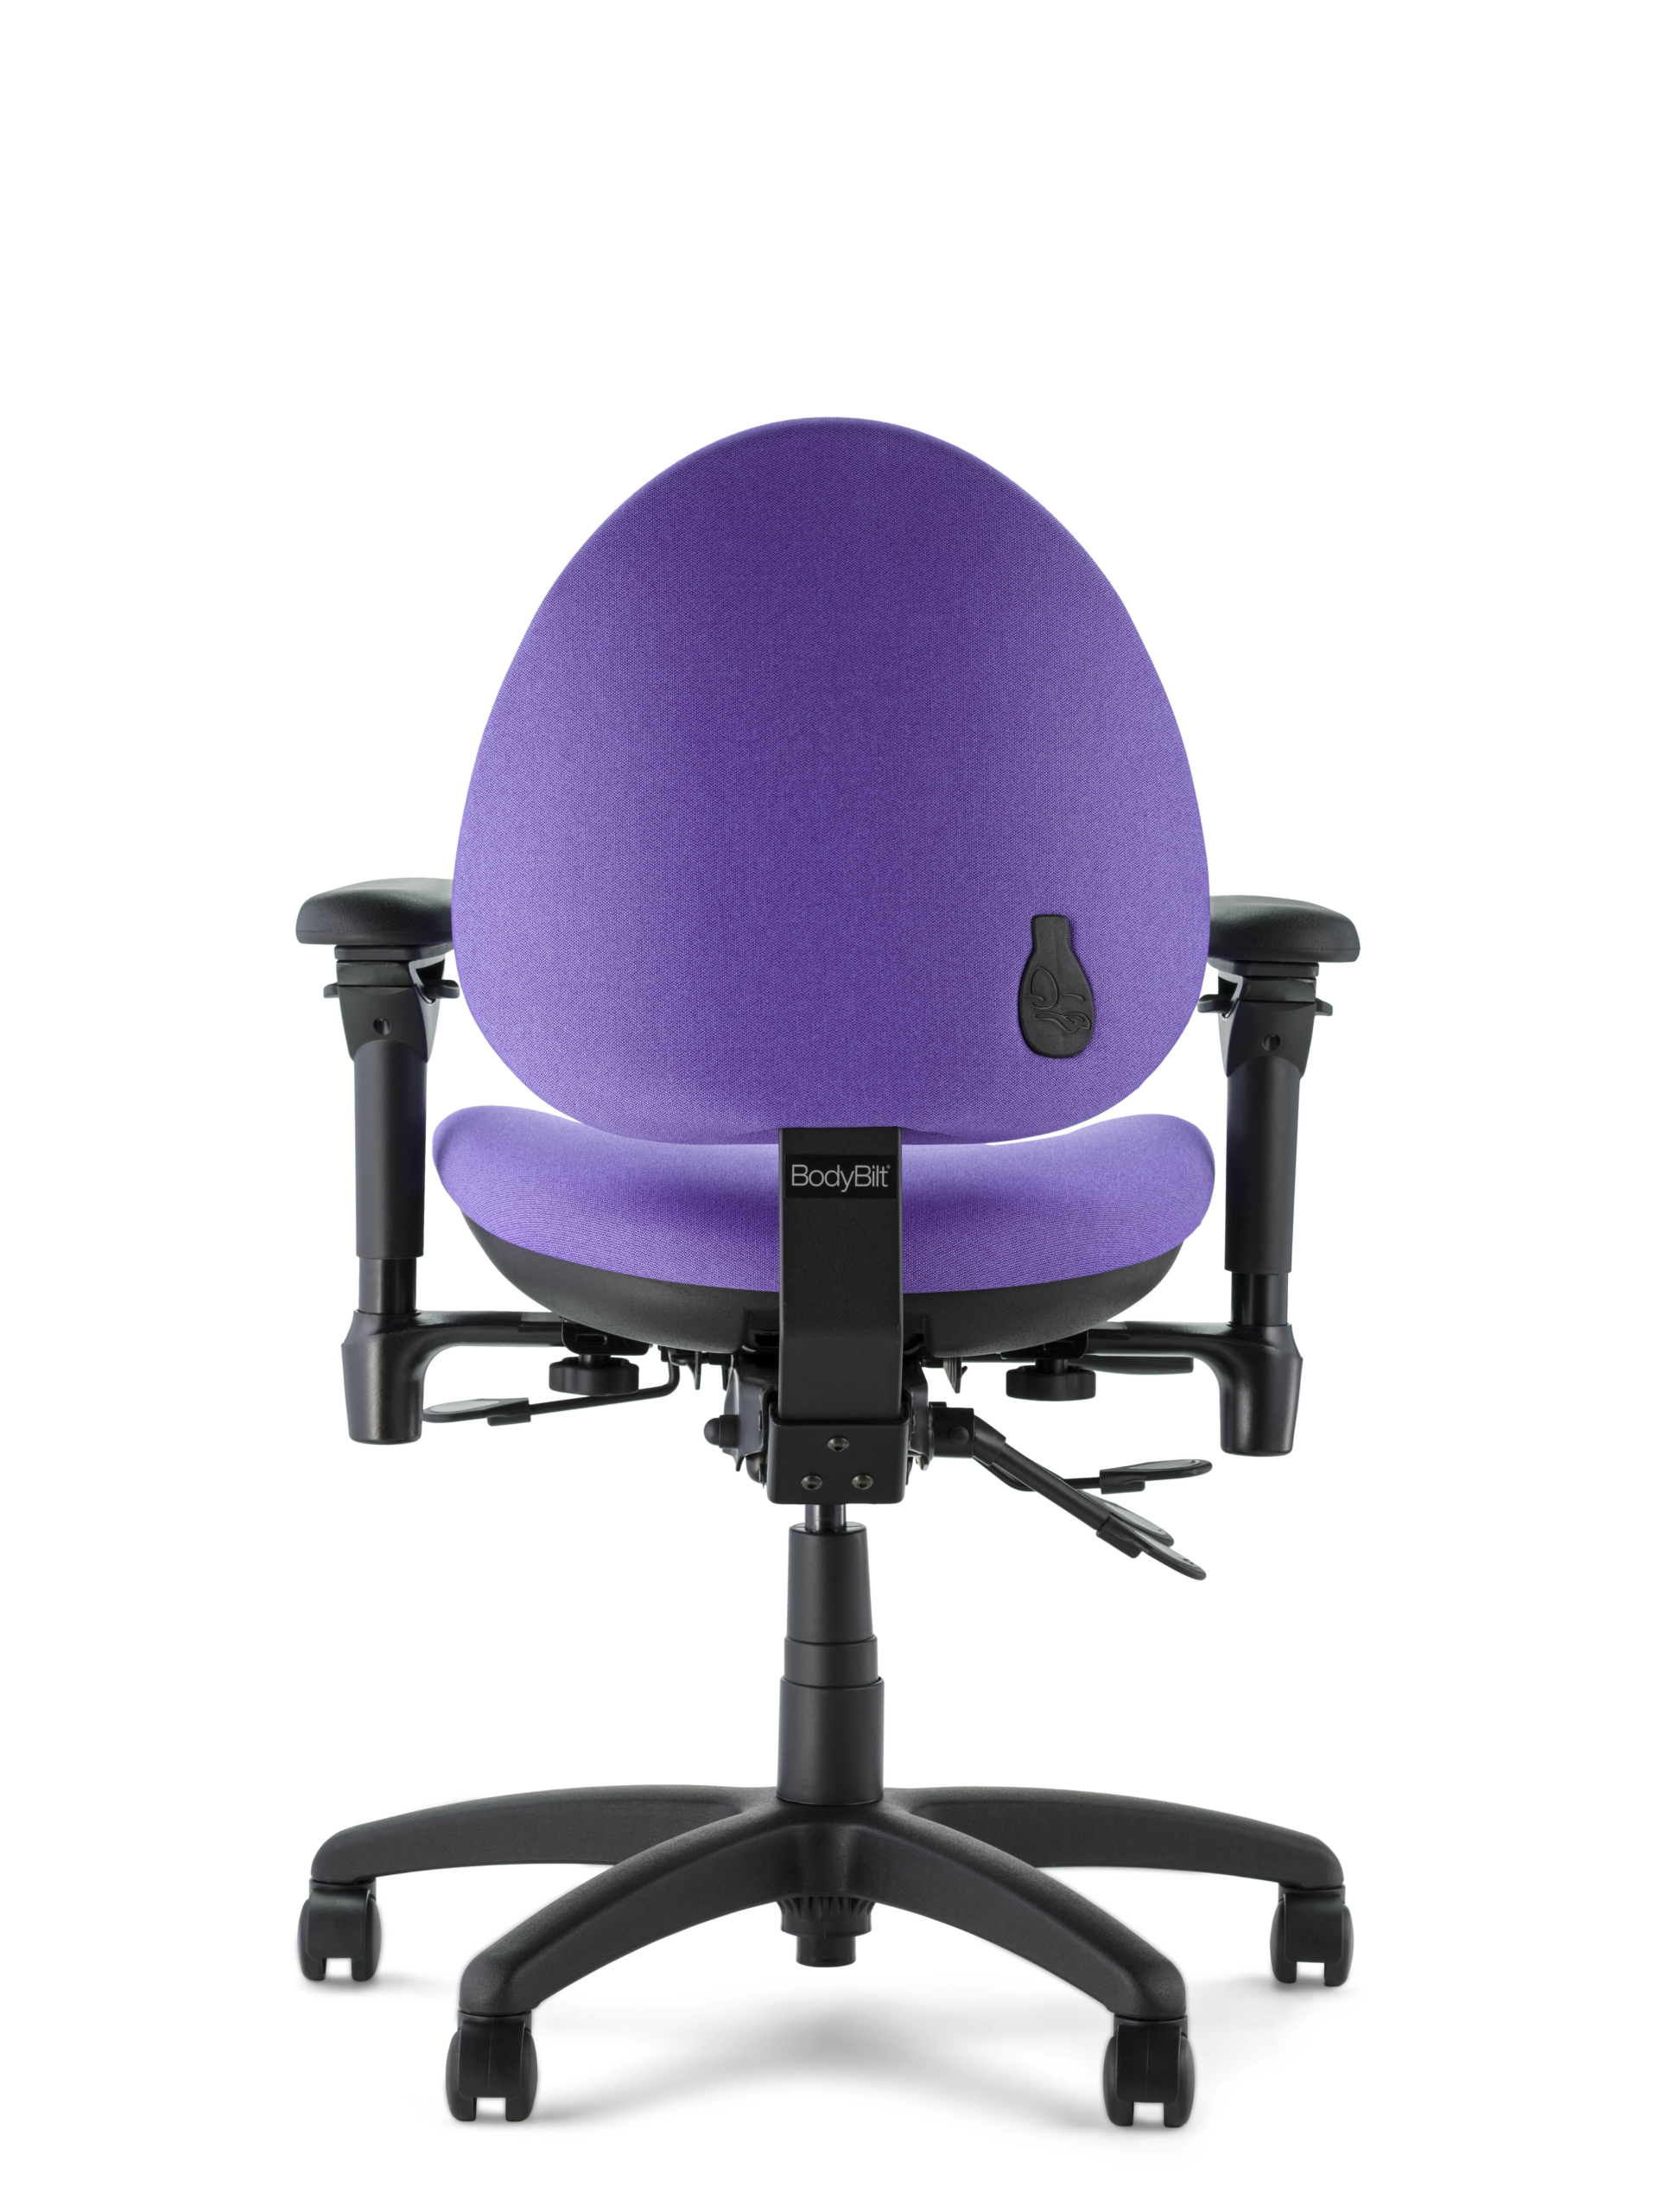 Back view of J757 with purple Hyacinth fabric optima arms and black base